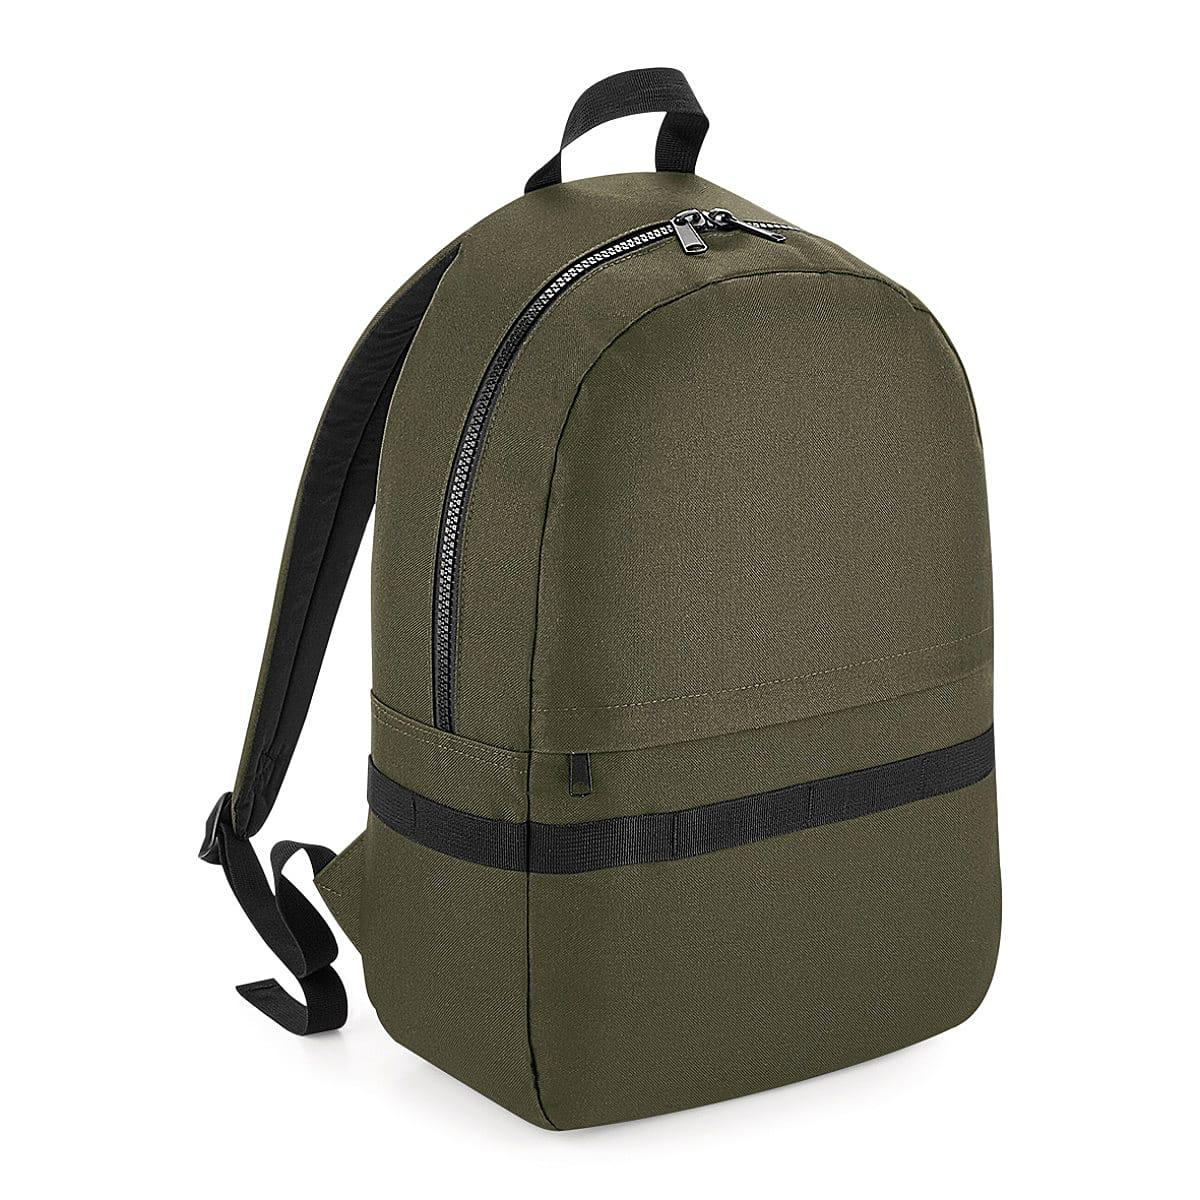 Bagbase Modulr 20 Litre Backpack in Military Green (Product Code: BG240)